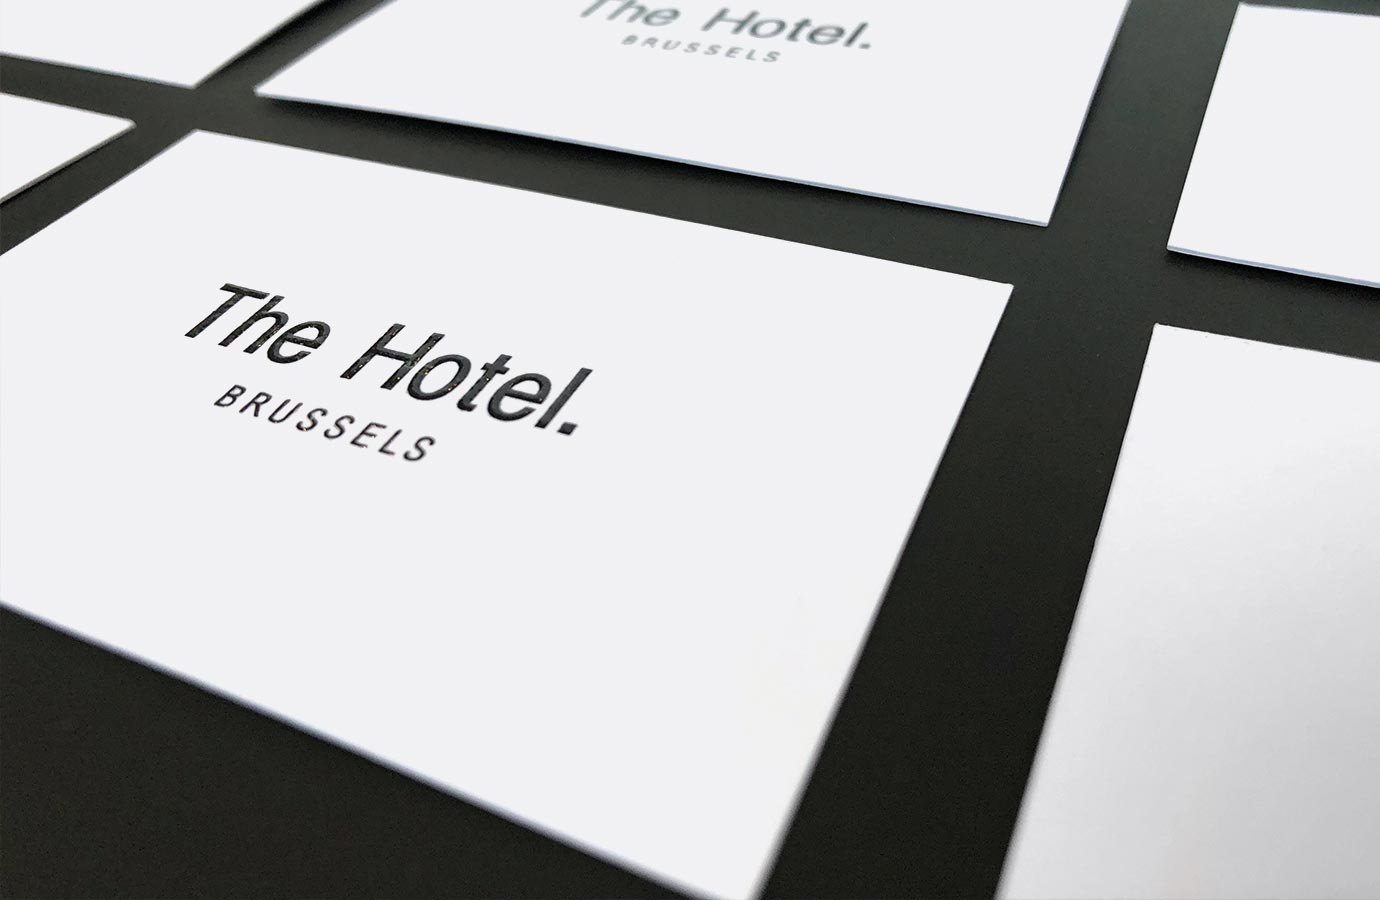 Identité corporative The Hotel